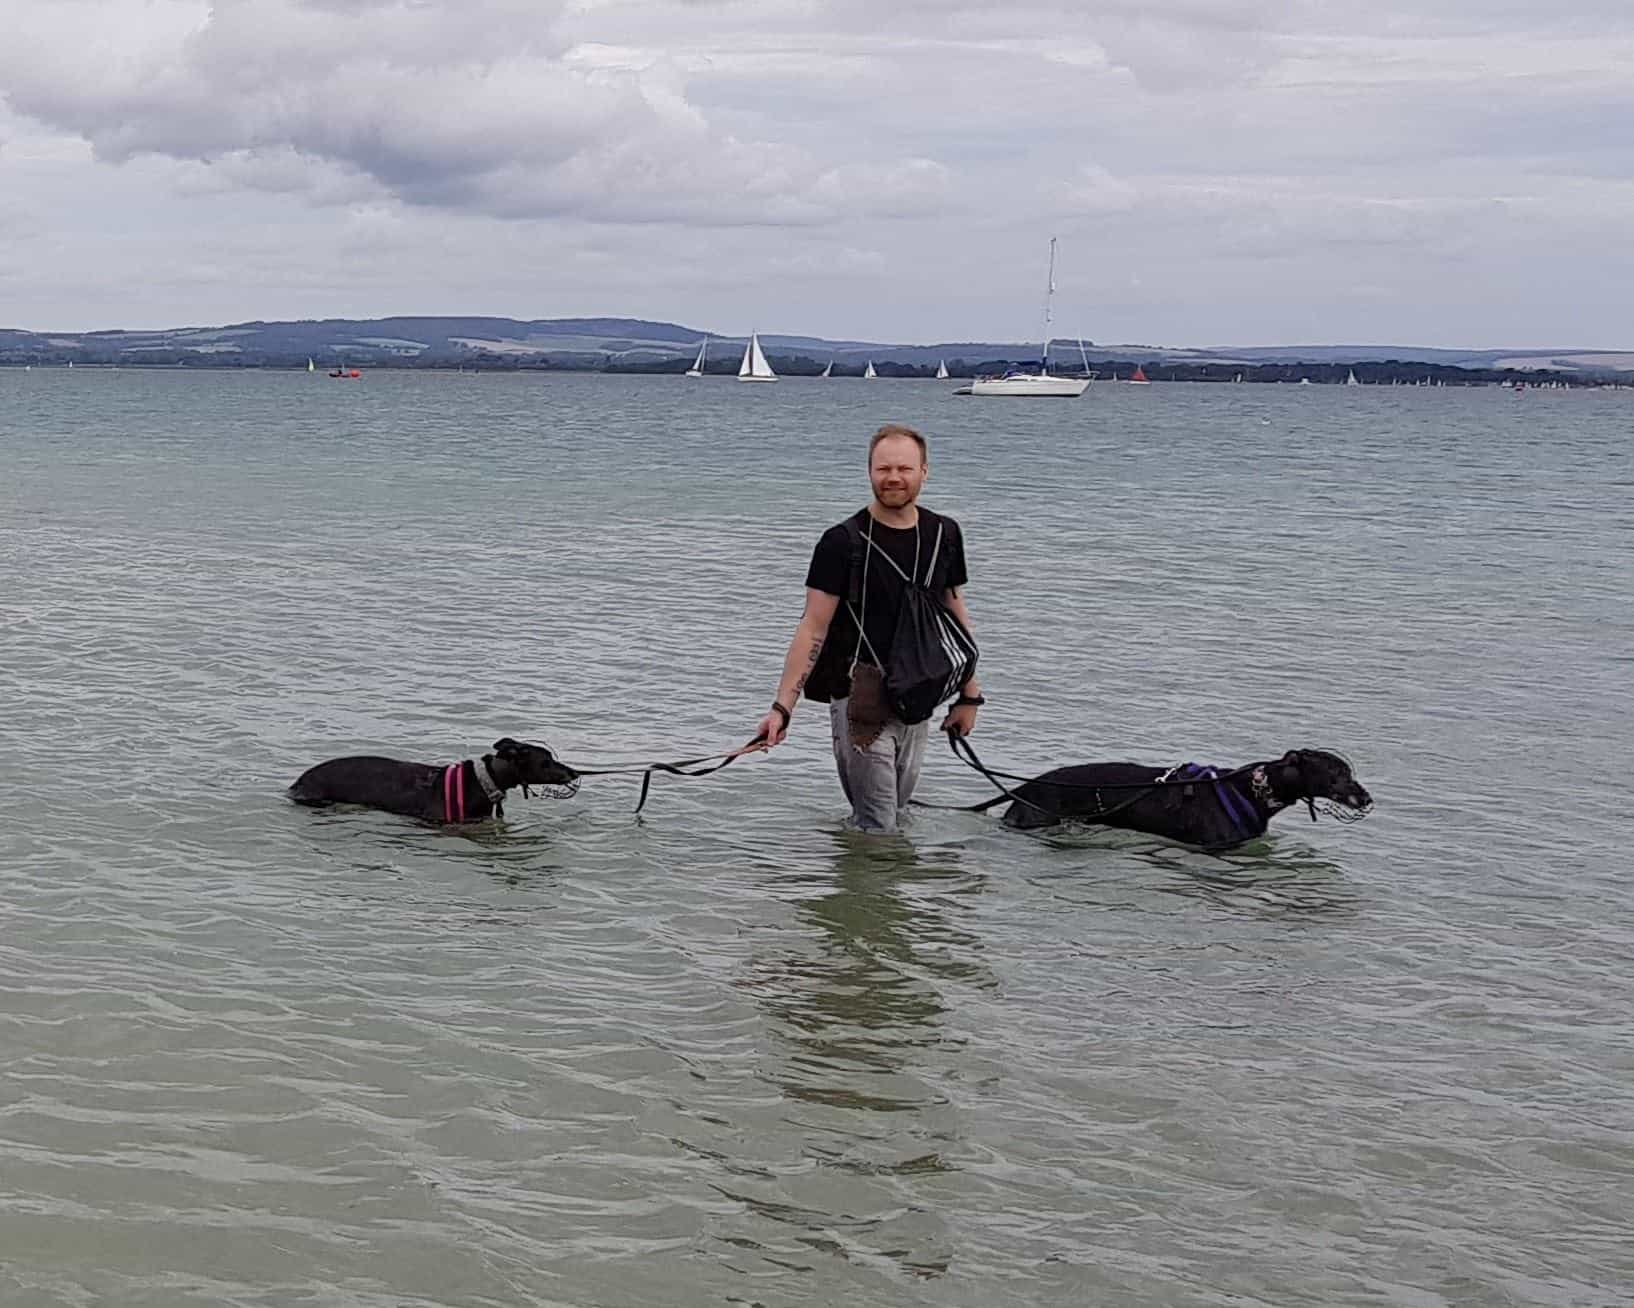 Reach the Beach 2019 - Wimbledon Greyhound Welfare